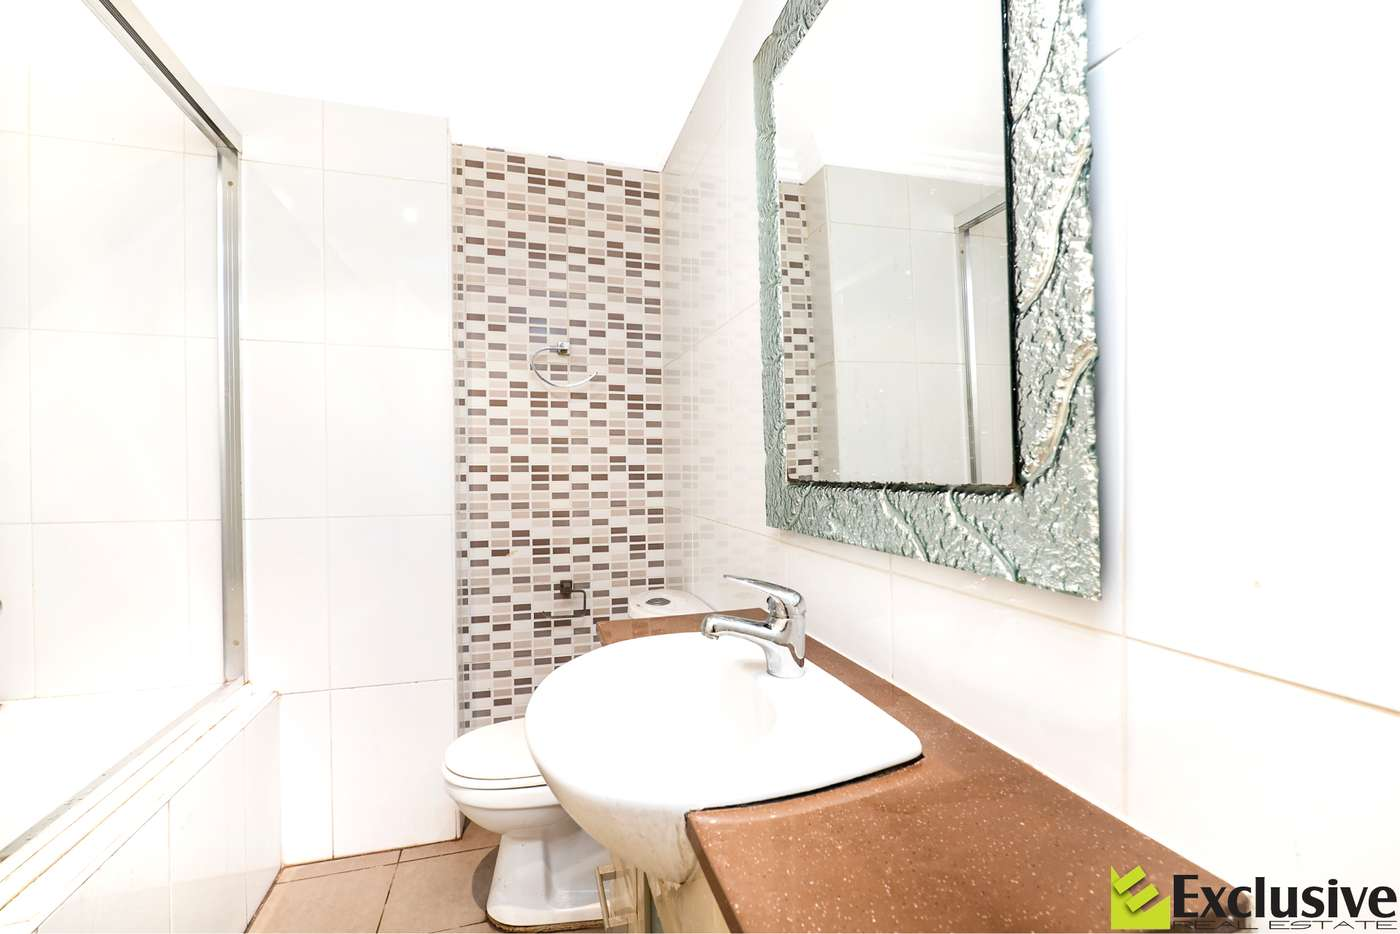 Fifth view of Homely apartment listing, 11/105 Church Street, Parramatta NSW 2150